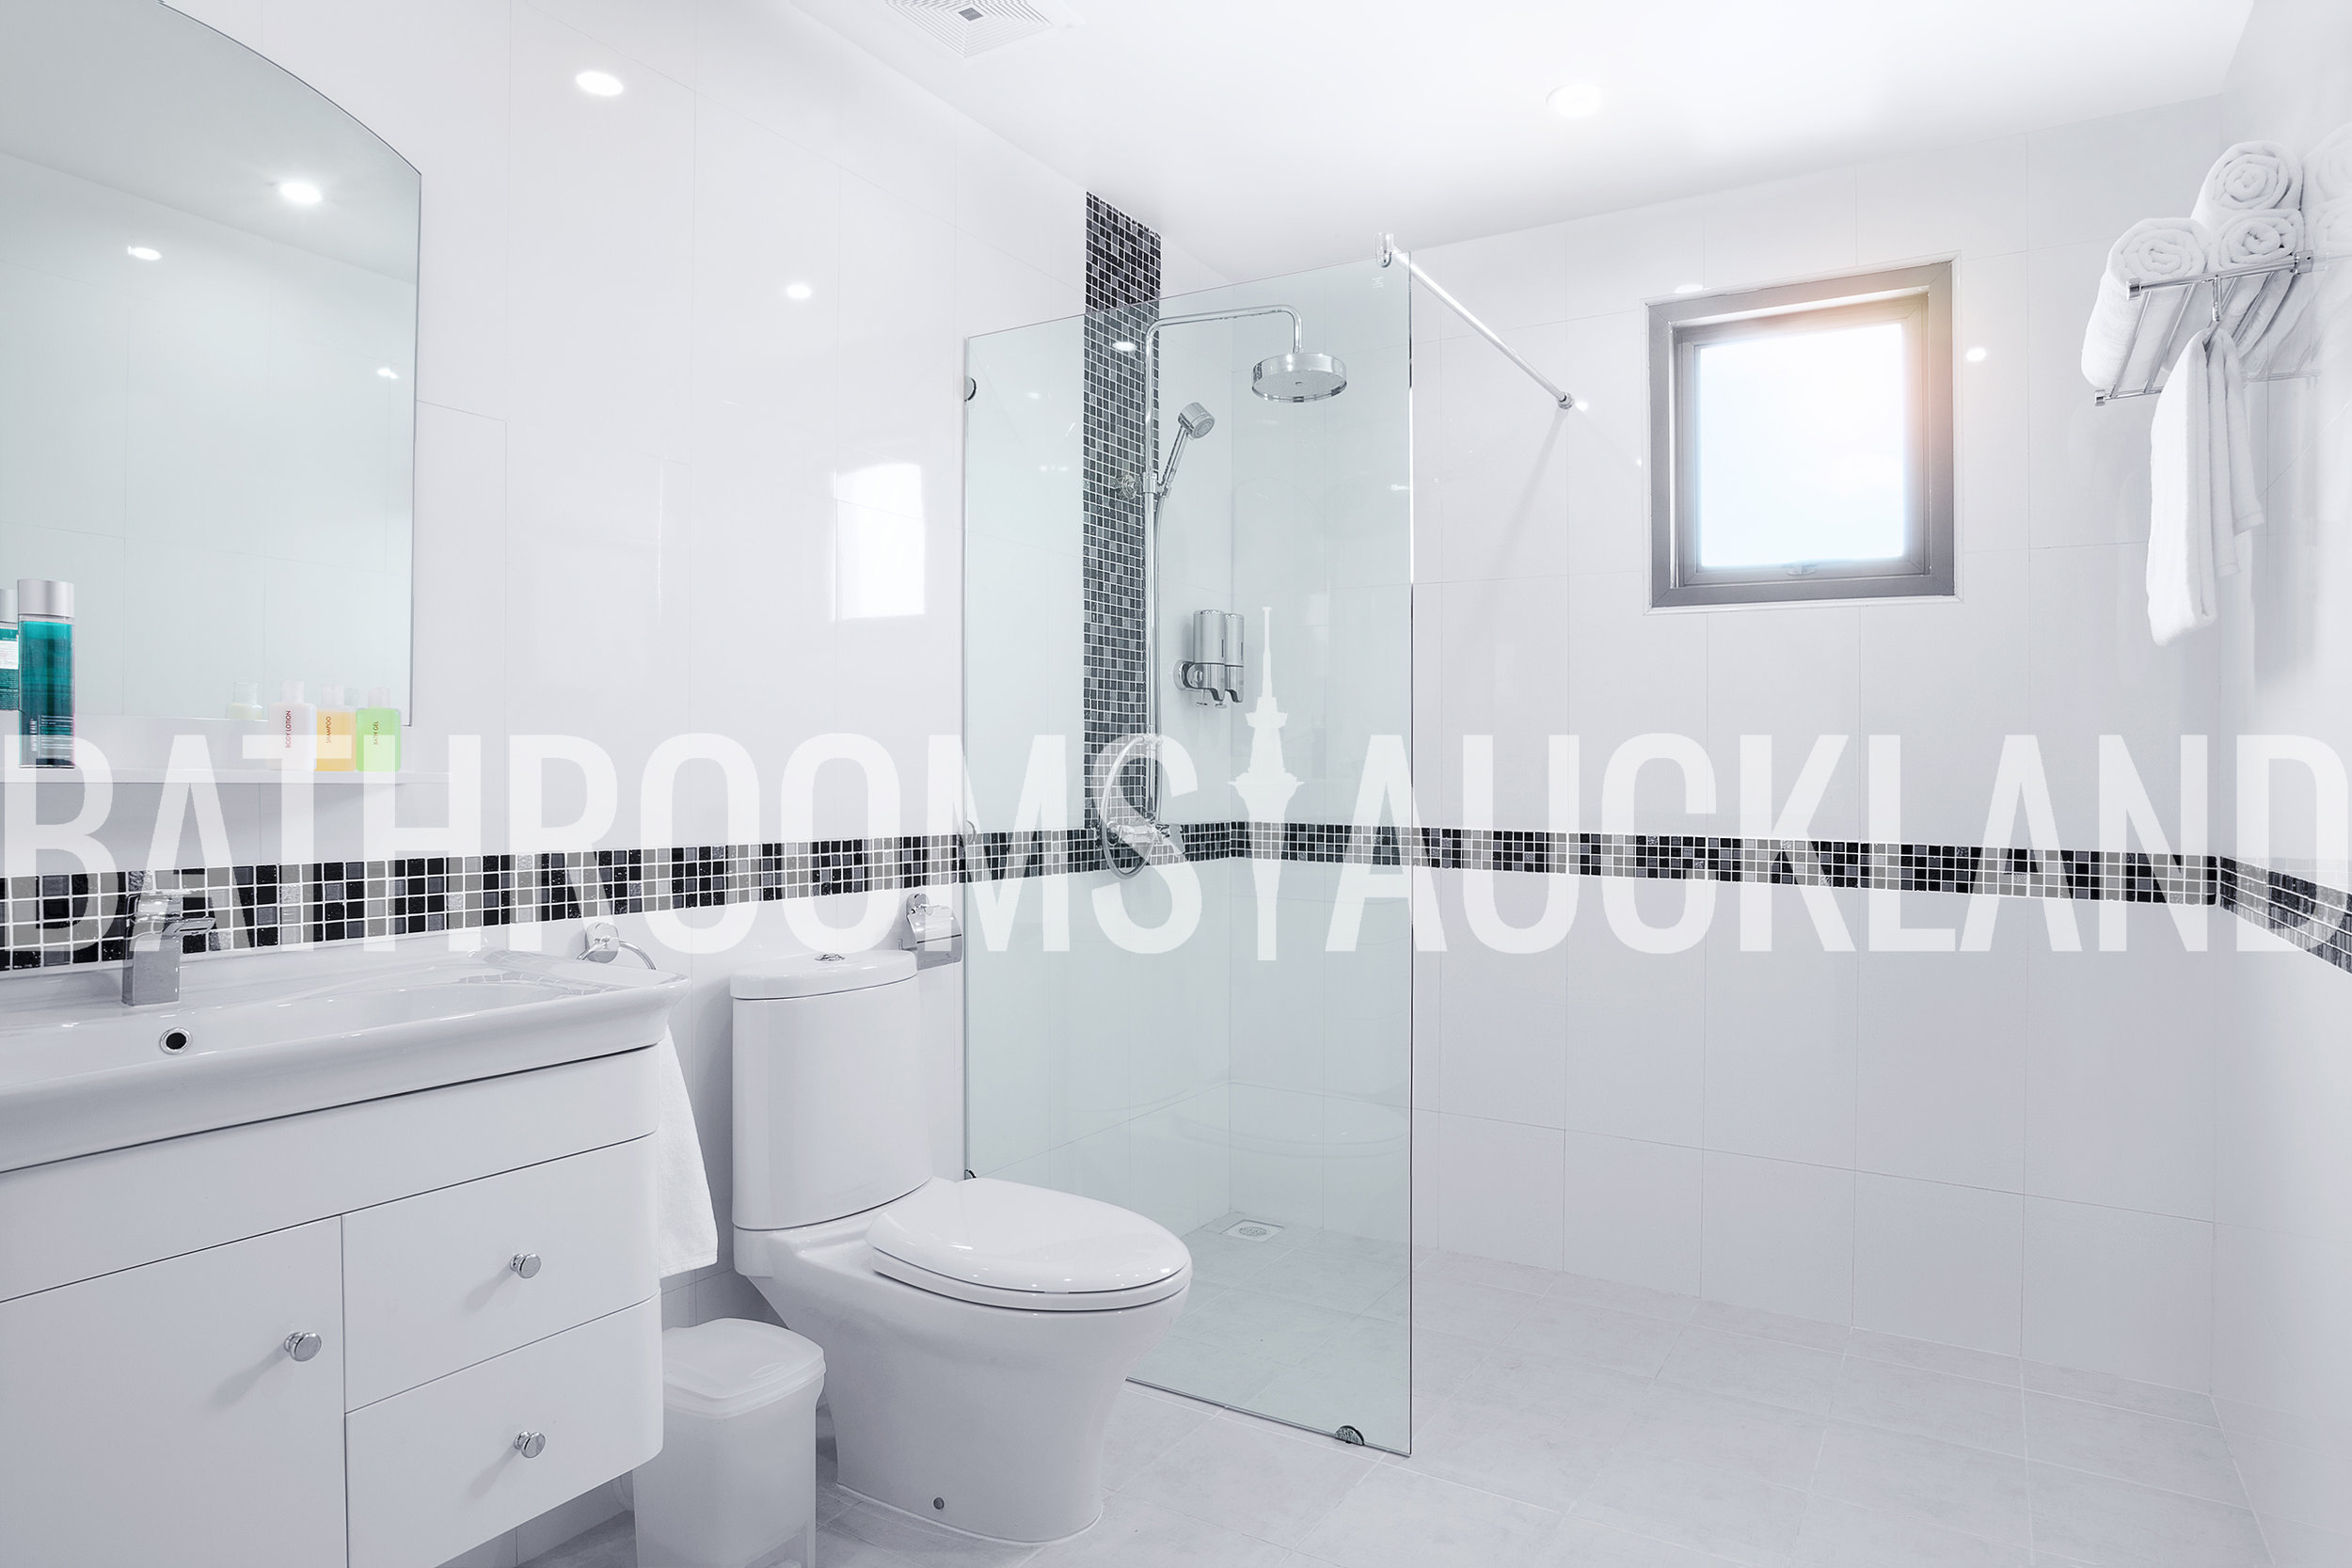 Bathrooms Auckland Renovation_Bathrooms In Auckland_Bathroom Renovation_Bathrooms Renovation_Bathrooms Auckland Renovation .128.jpg